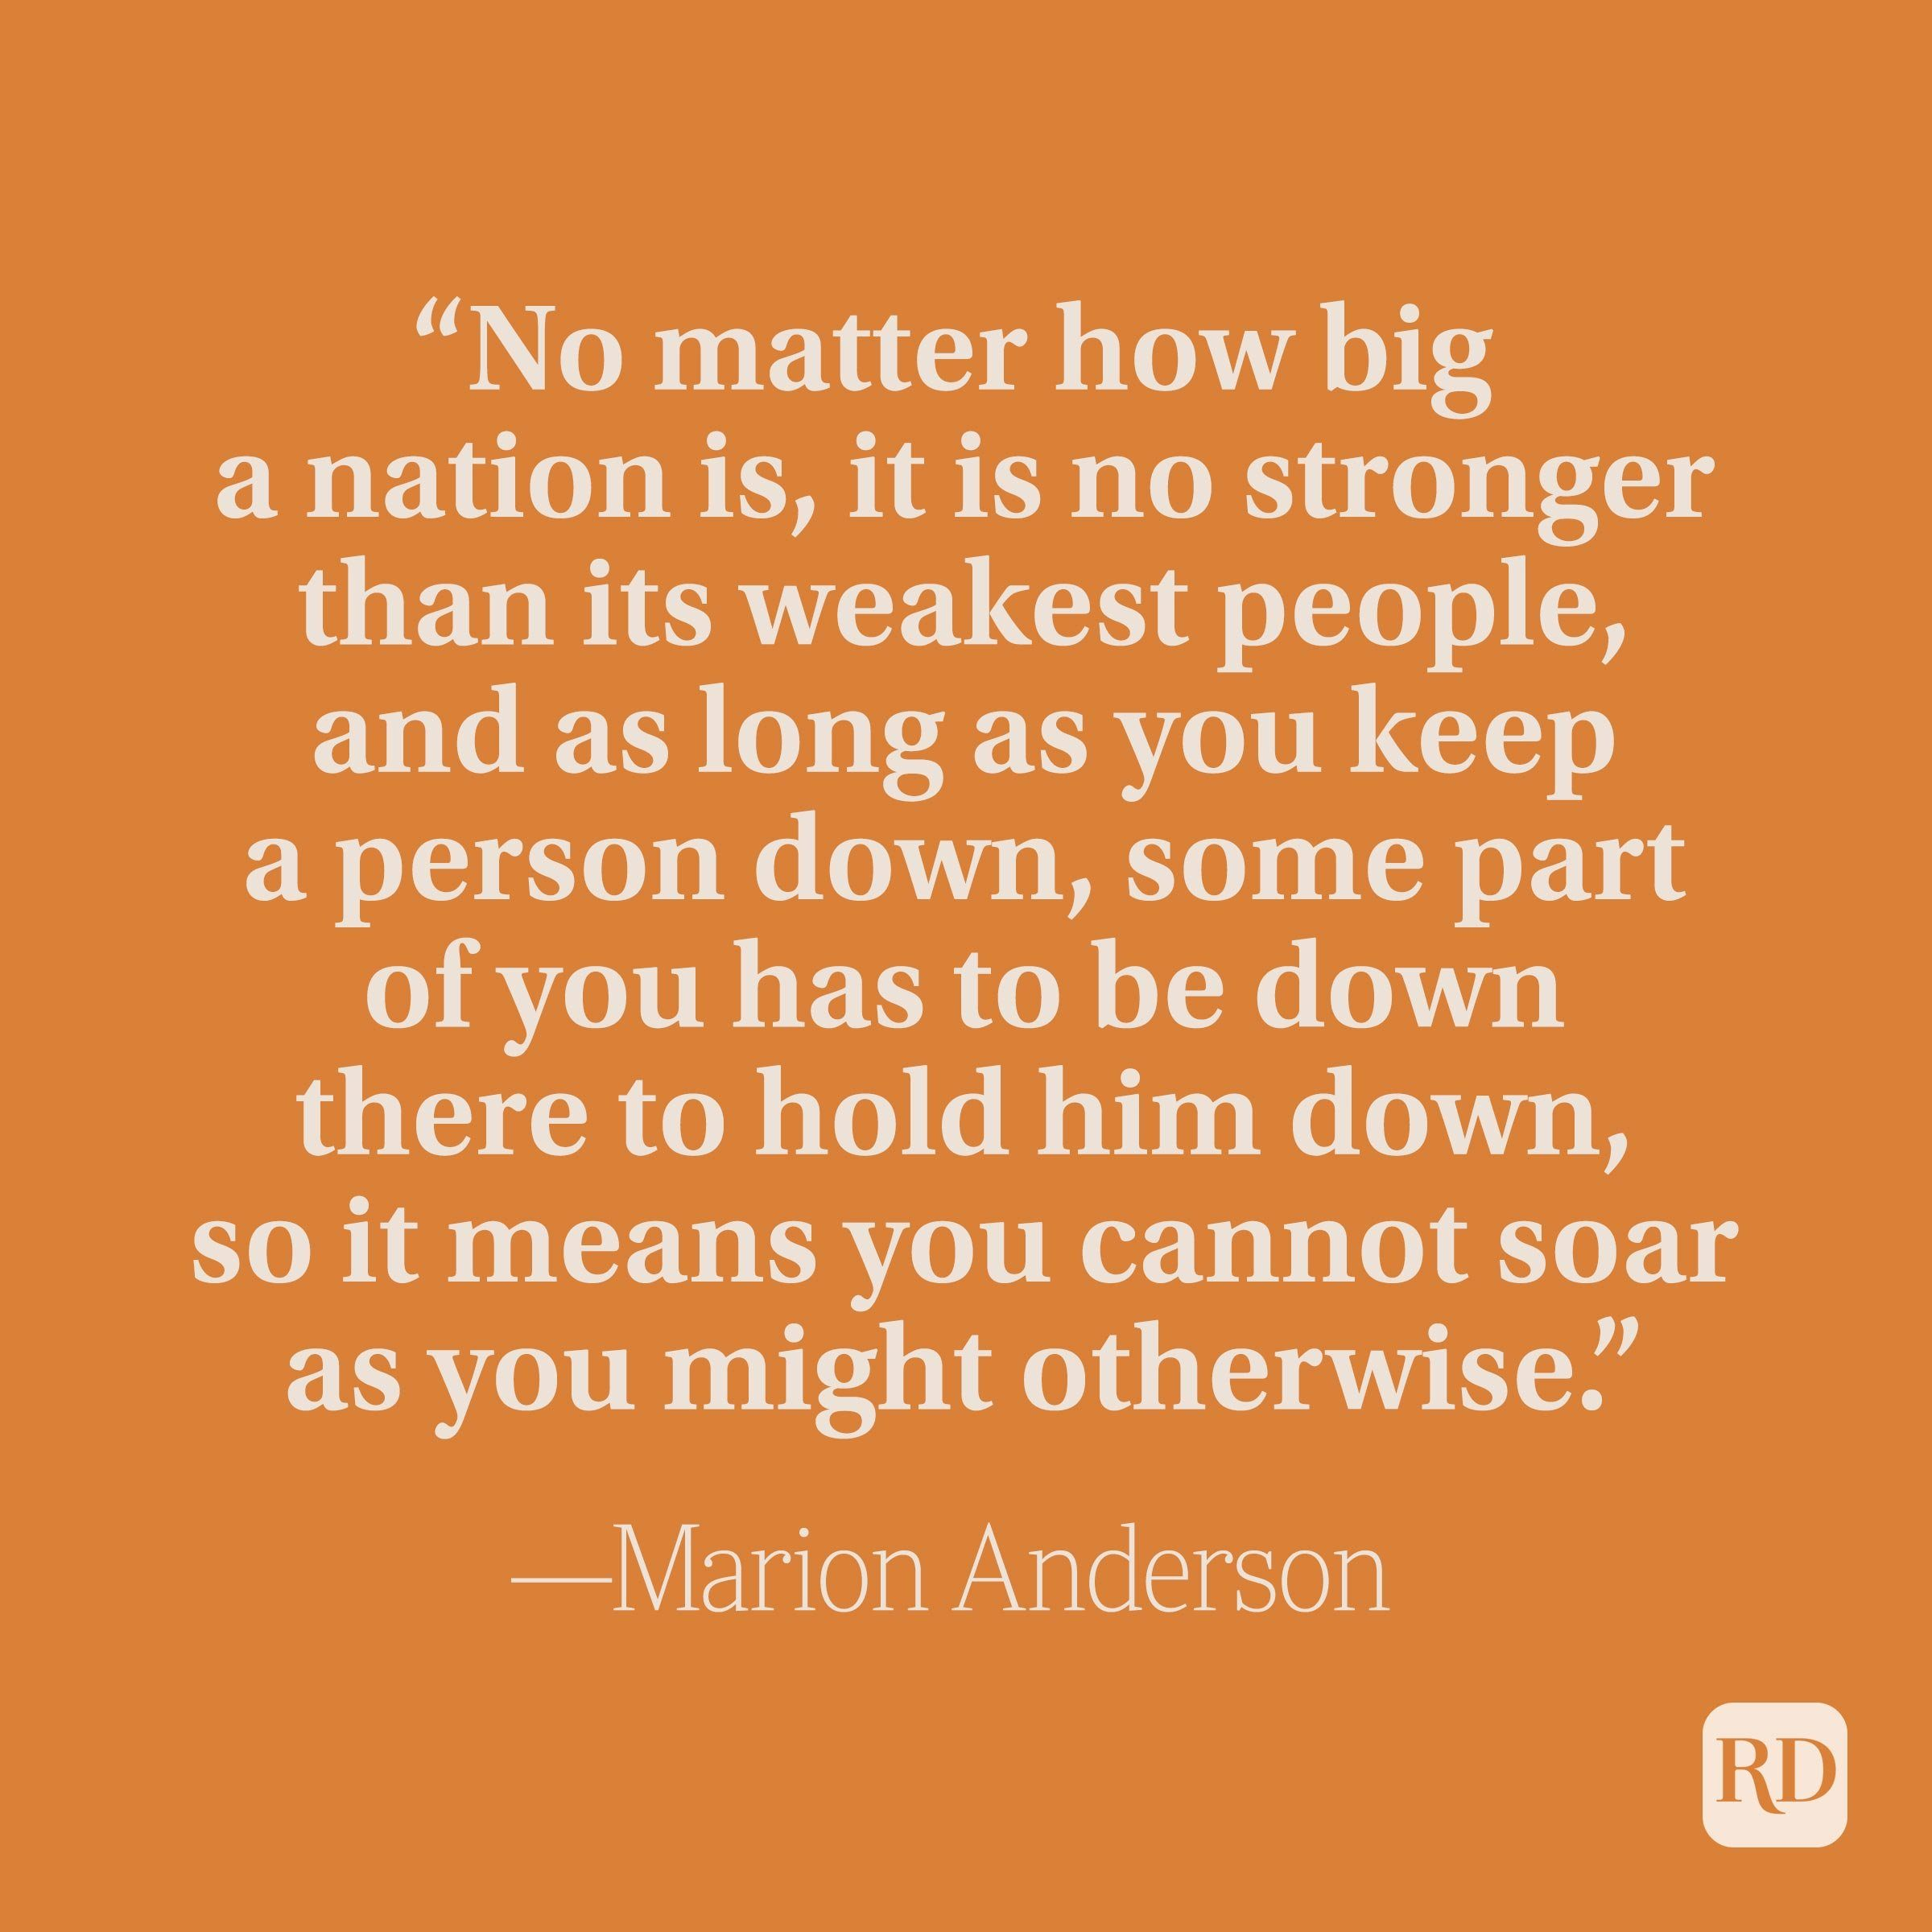 """""""No matter how big a nation is, it is no stronger than its weakest people, and as long as you keep a person down, some part of you has to be down there to hold him down, so it means you cannot soar as you might otherwise."""" –Marian Anderson"""